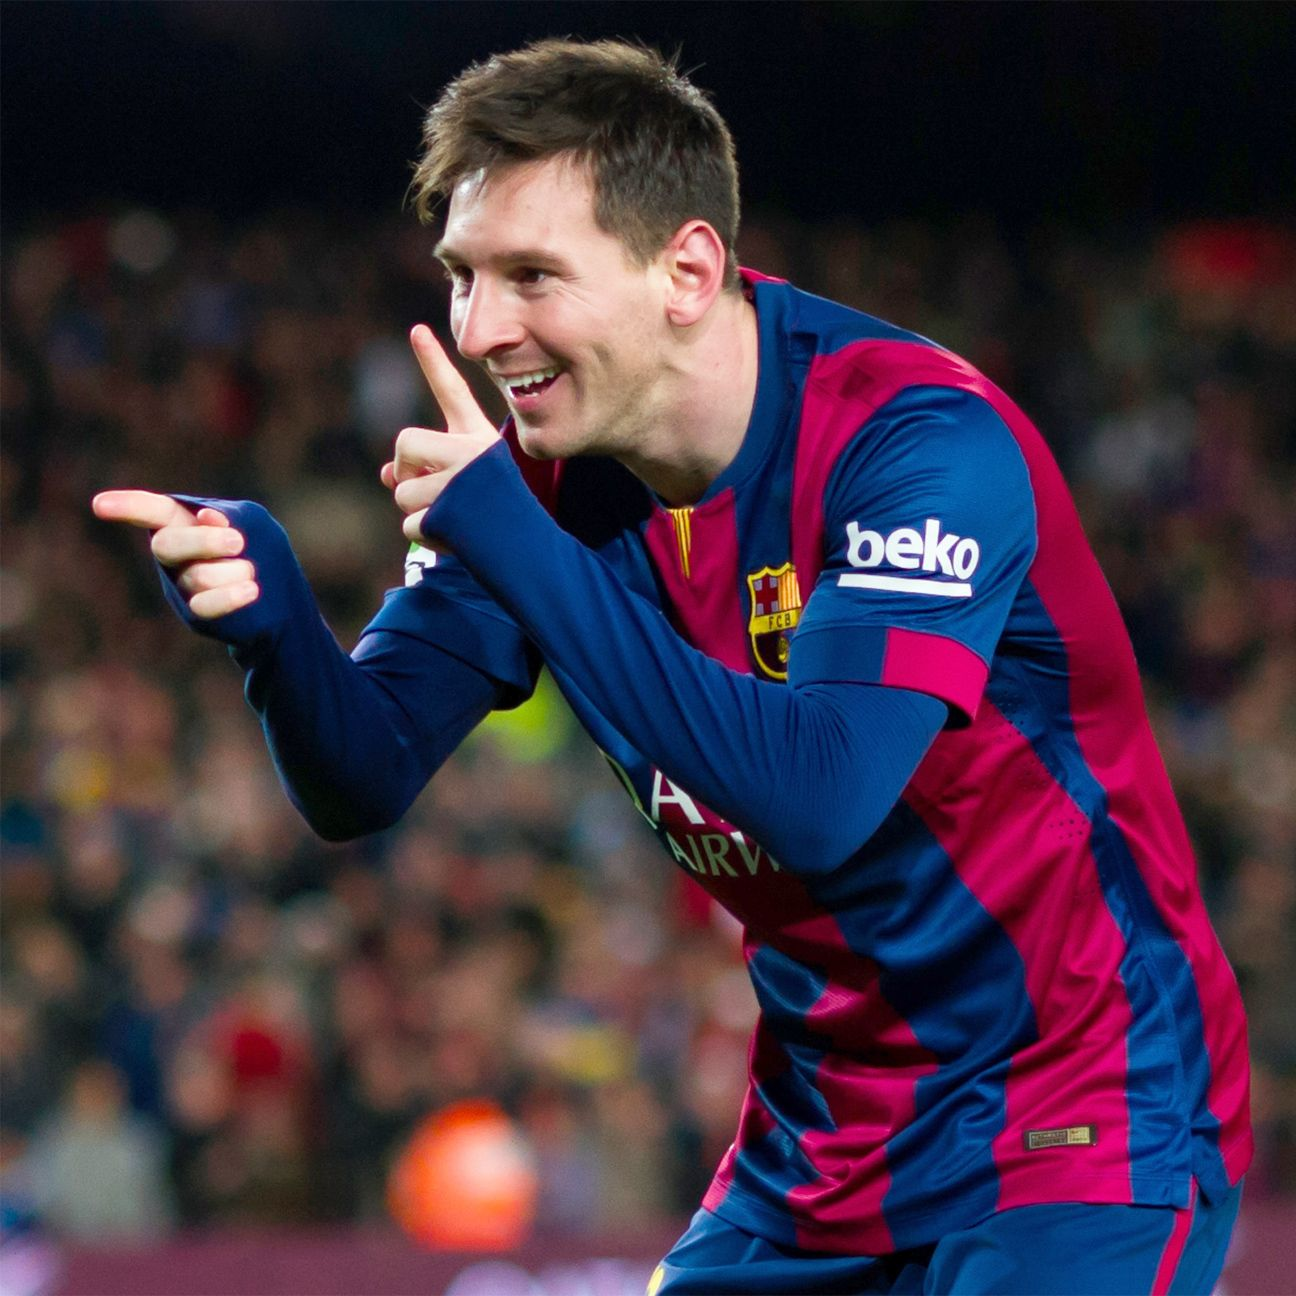 Lionel Messi is in such great form that seems to be picking and choosing his moments when he scores.